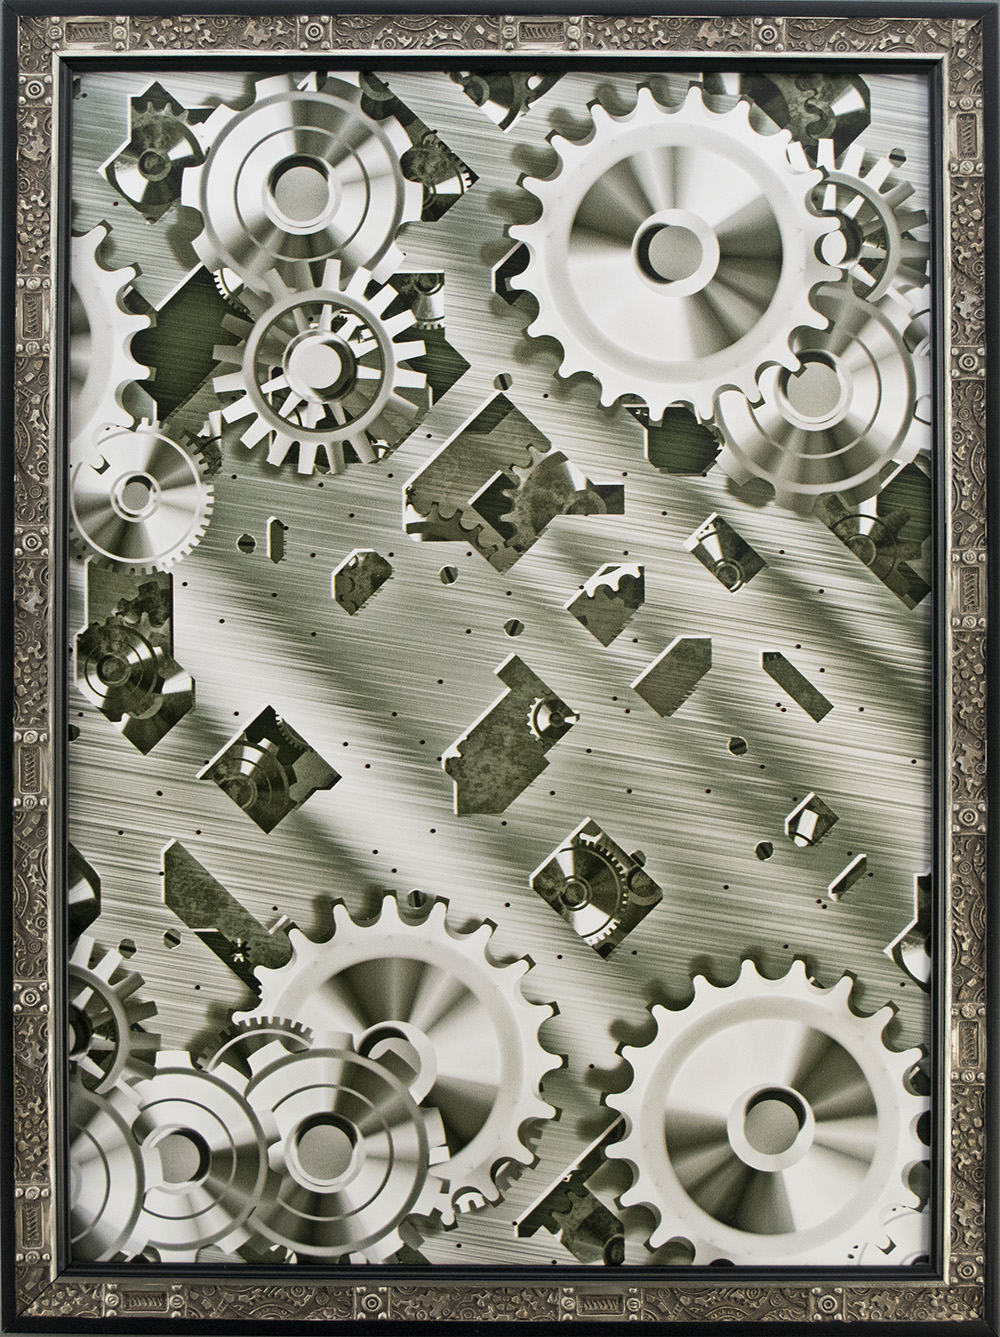 Steampunk Picture Frame. Inspired Cogs and Clockwork